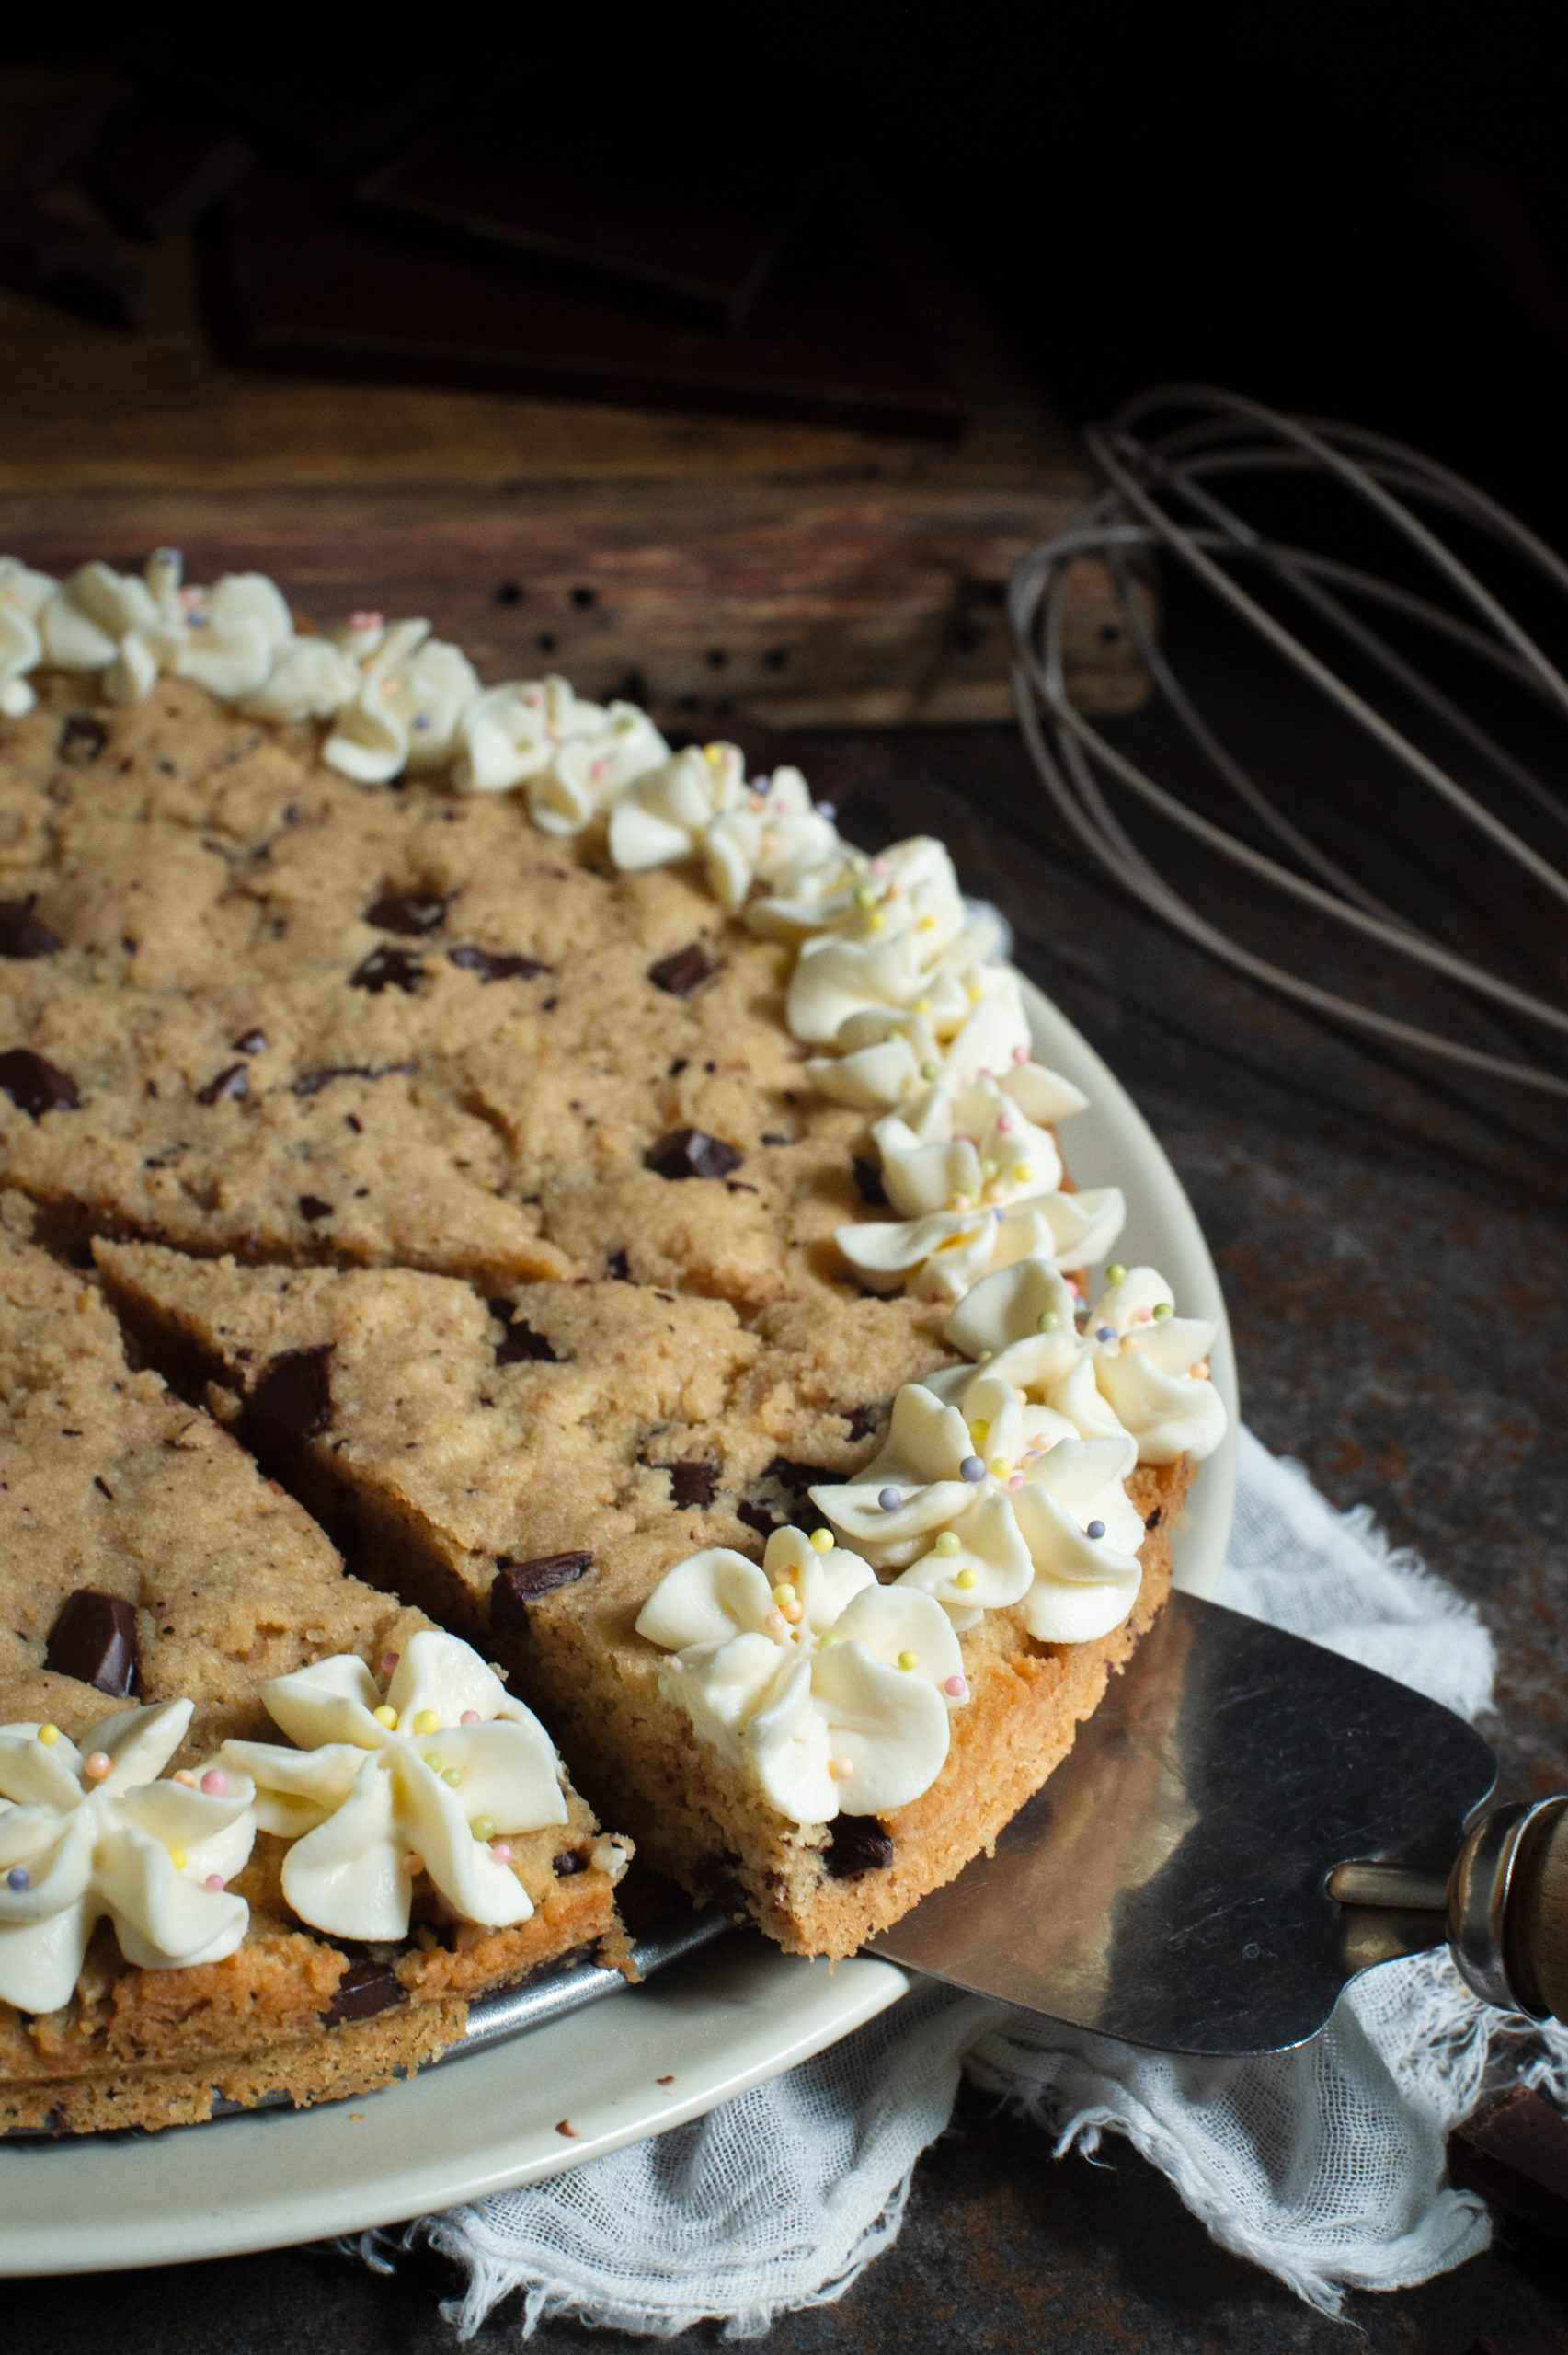 Slice of Keto cookie cake being lifted with a pie cutter